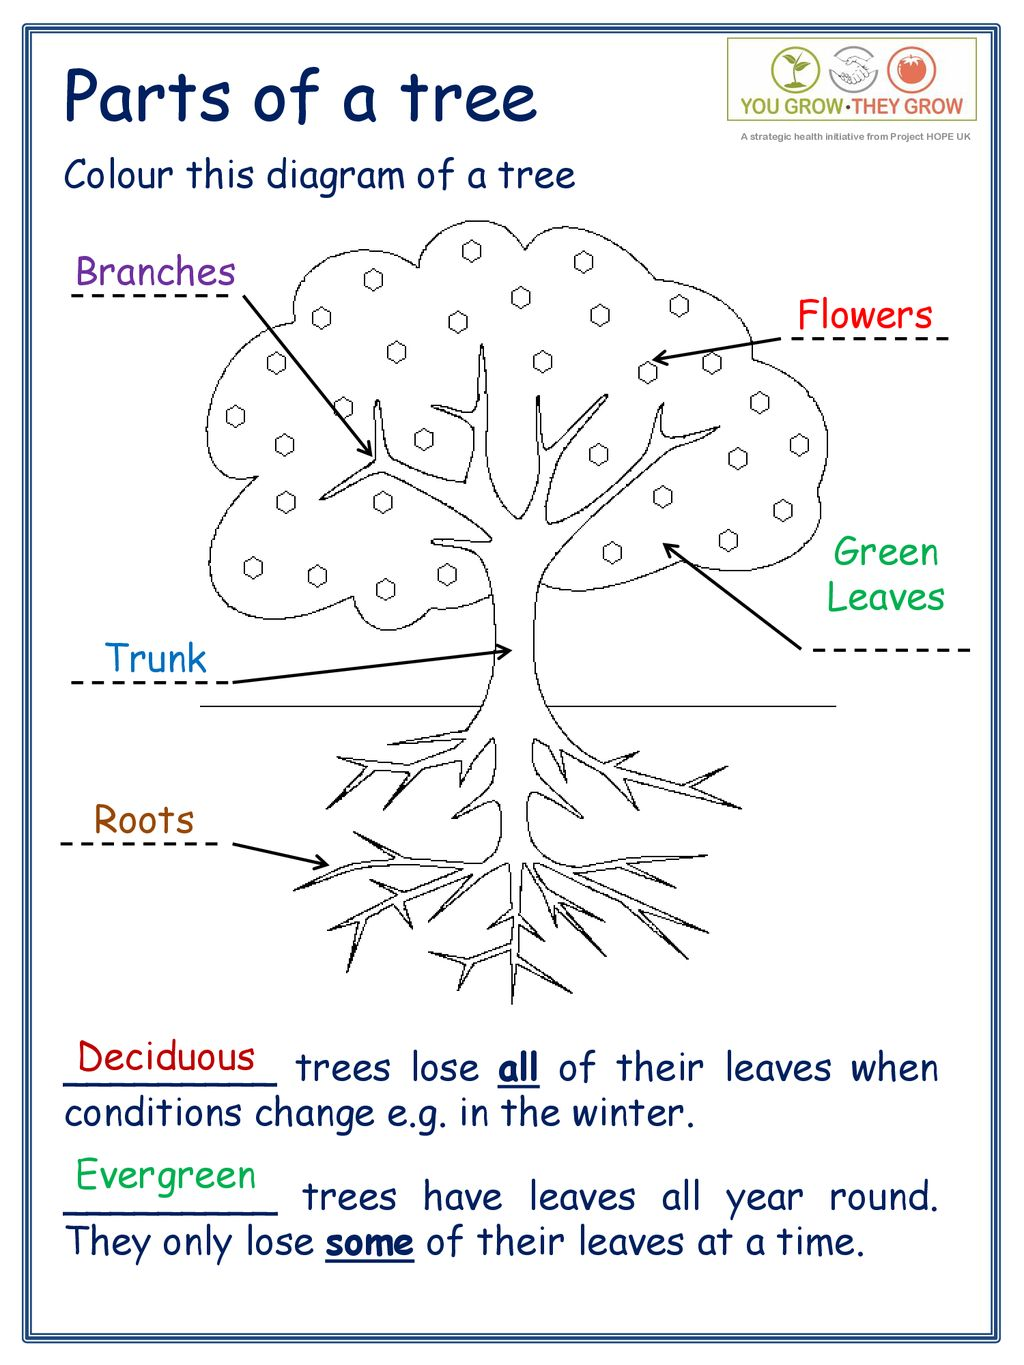 parts of a tree trunk diagram | world of reference tree trunk branch diagram #8